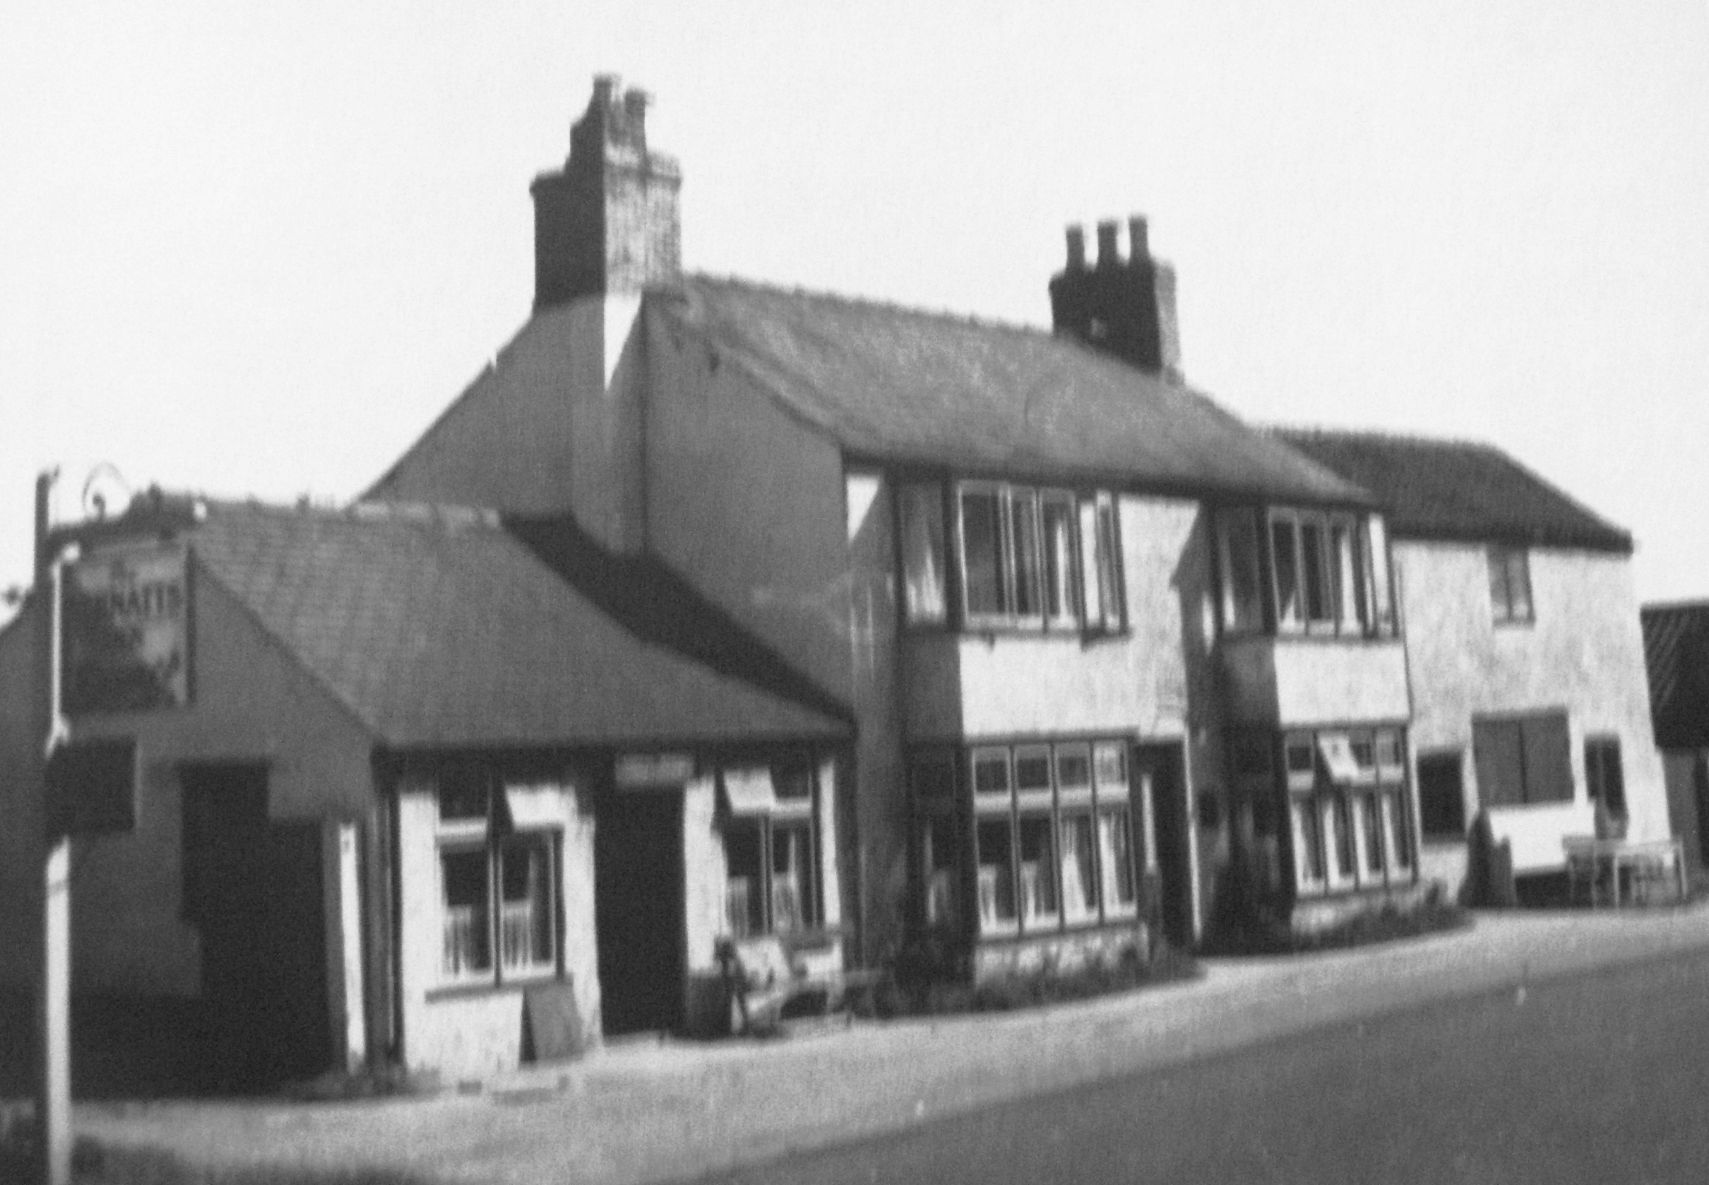 Reminiscences of a Pinchbeck Inn